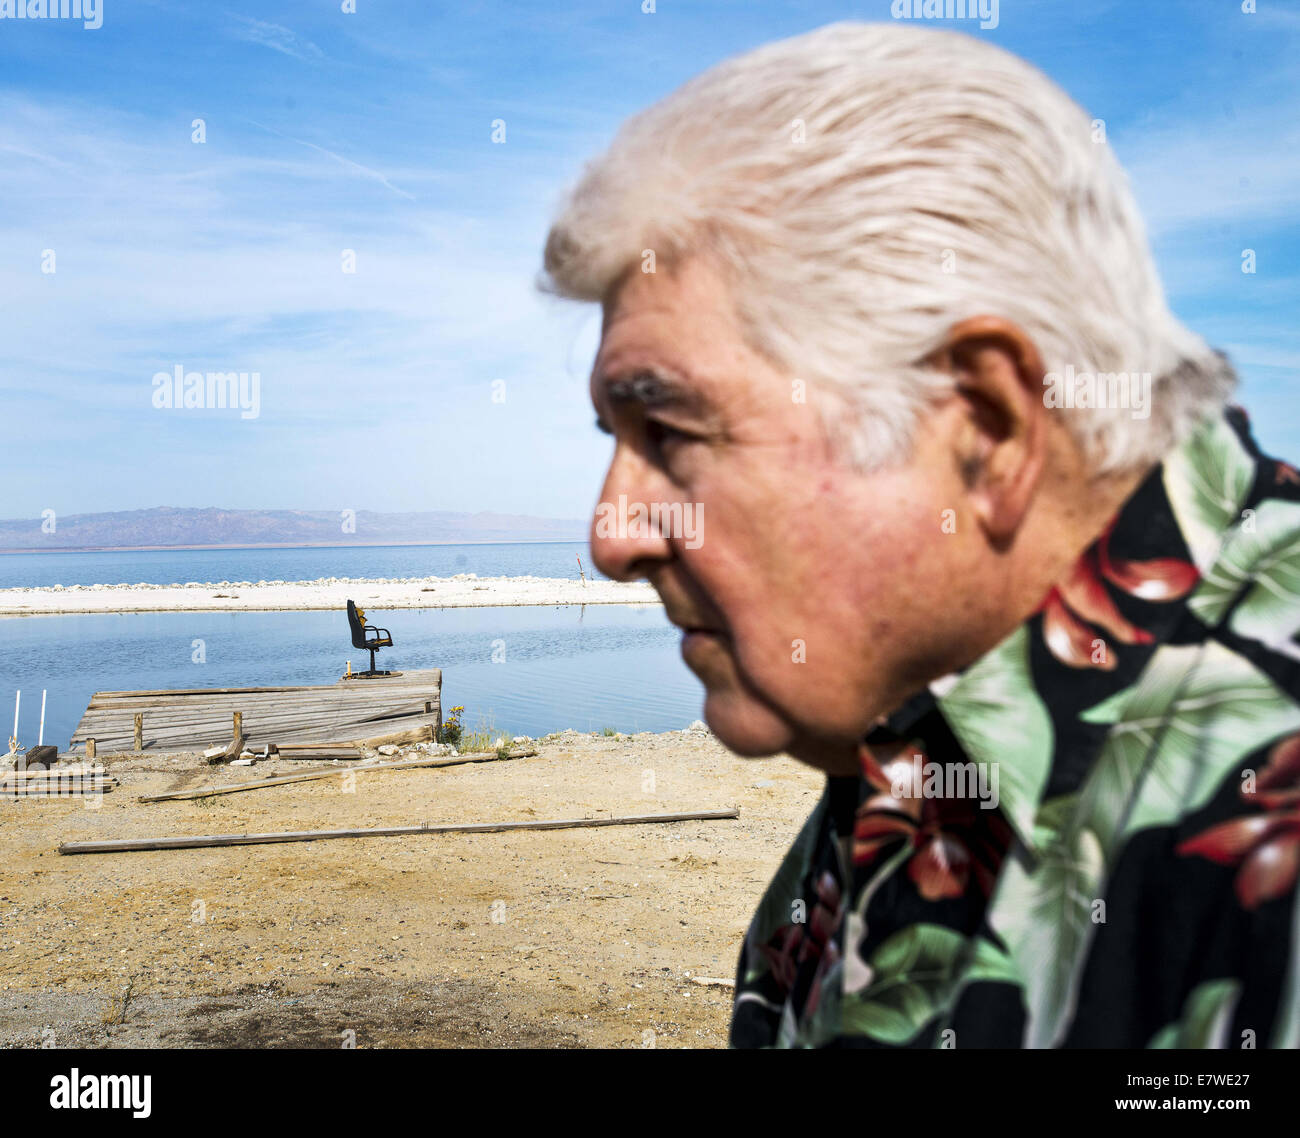 salton sea ca usa 25th mar 2013 norm niver with his dock on stock photo 73703903 alamy. Black Bedroom Furniture Sets. Home Design Ideas